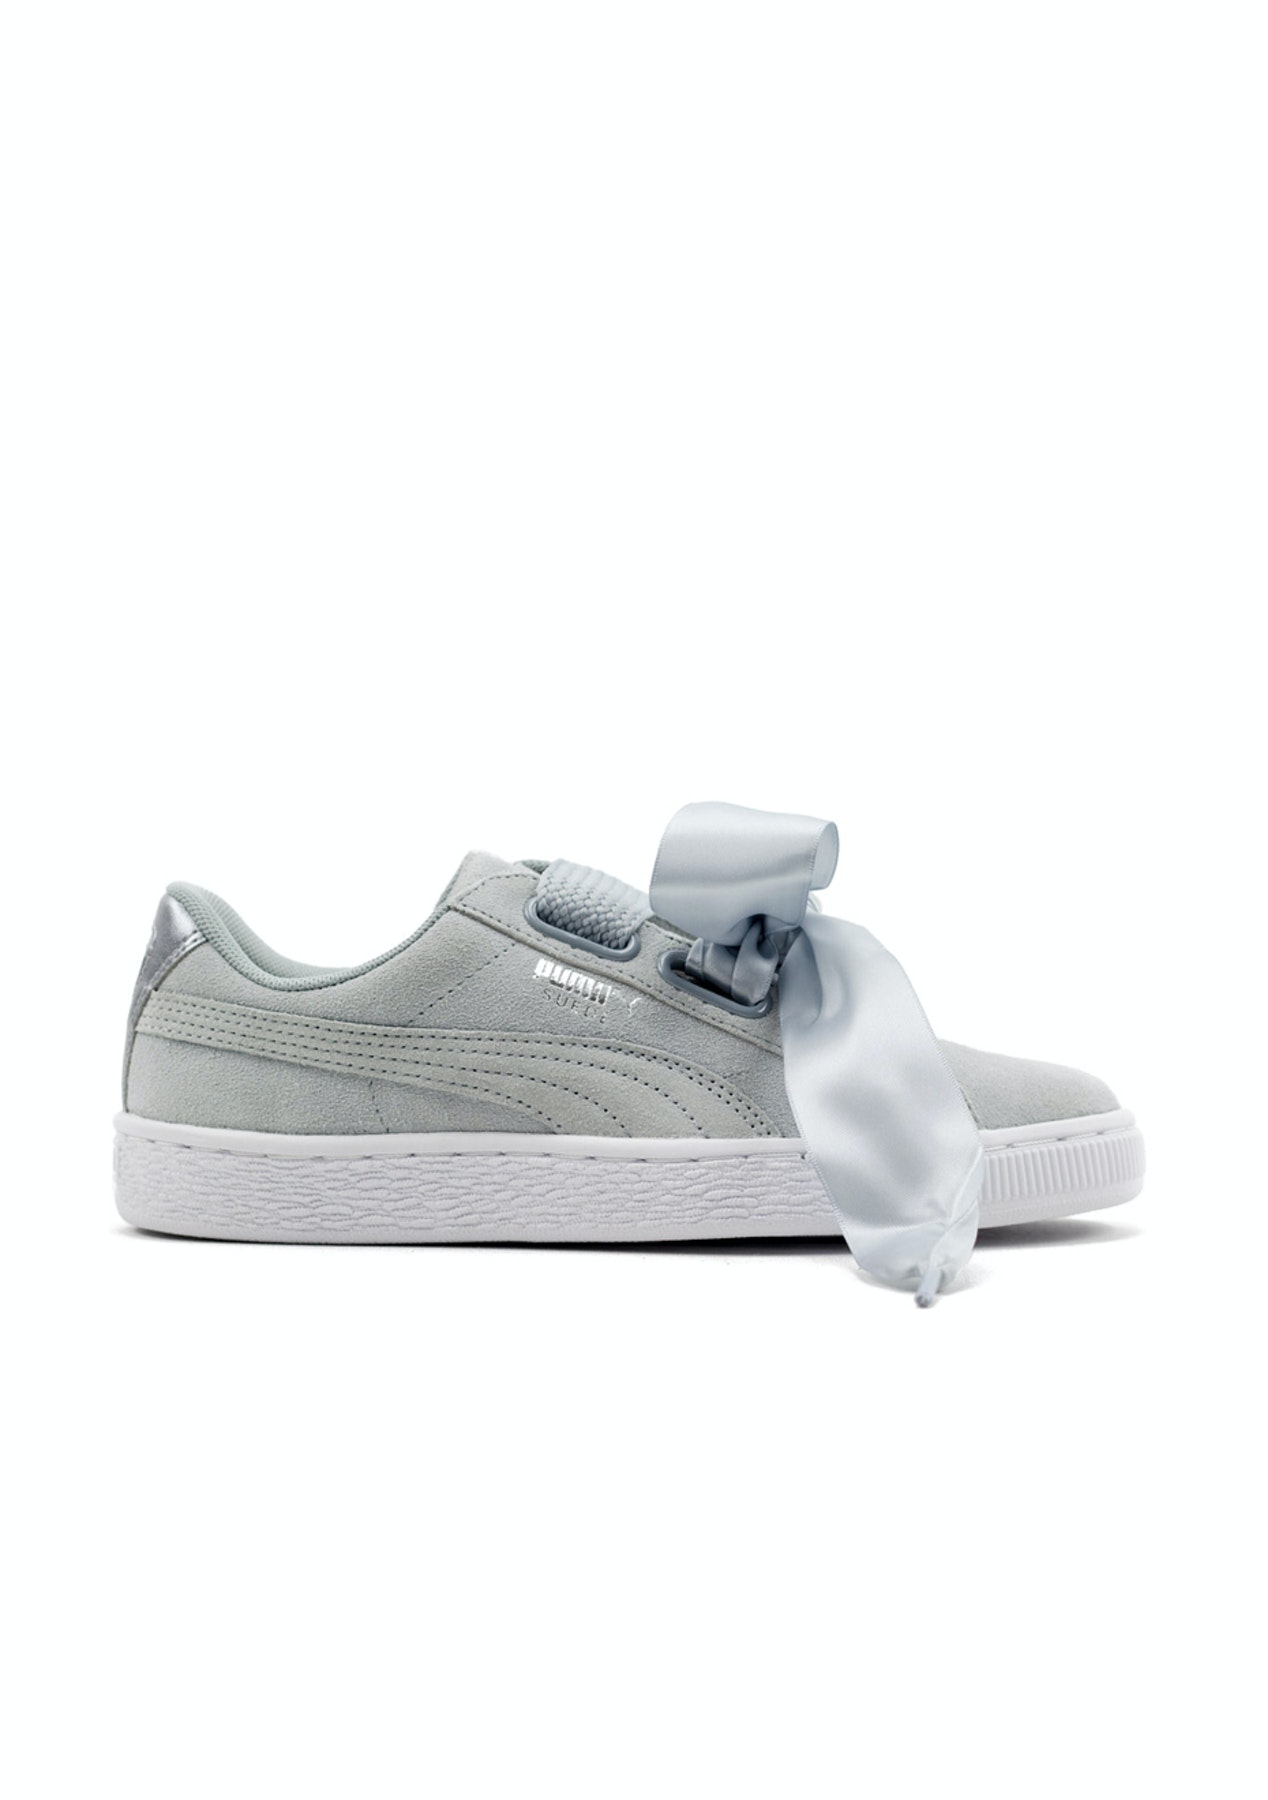 new product b9f32 883ae Puma Womens - Suede Heart Safari Quarry